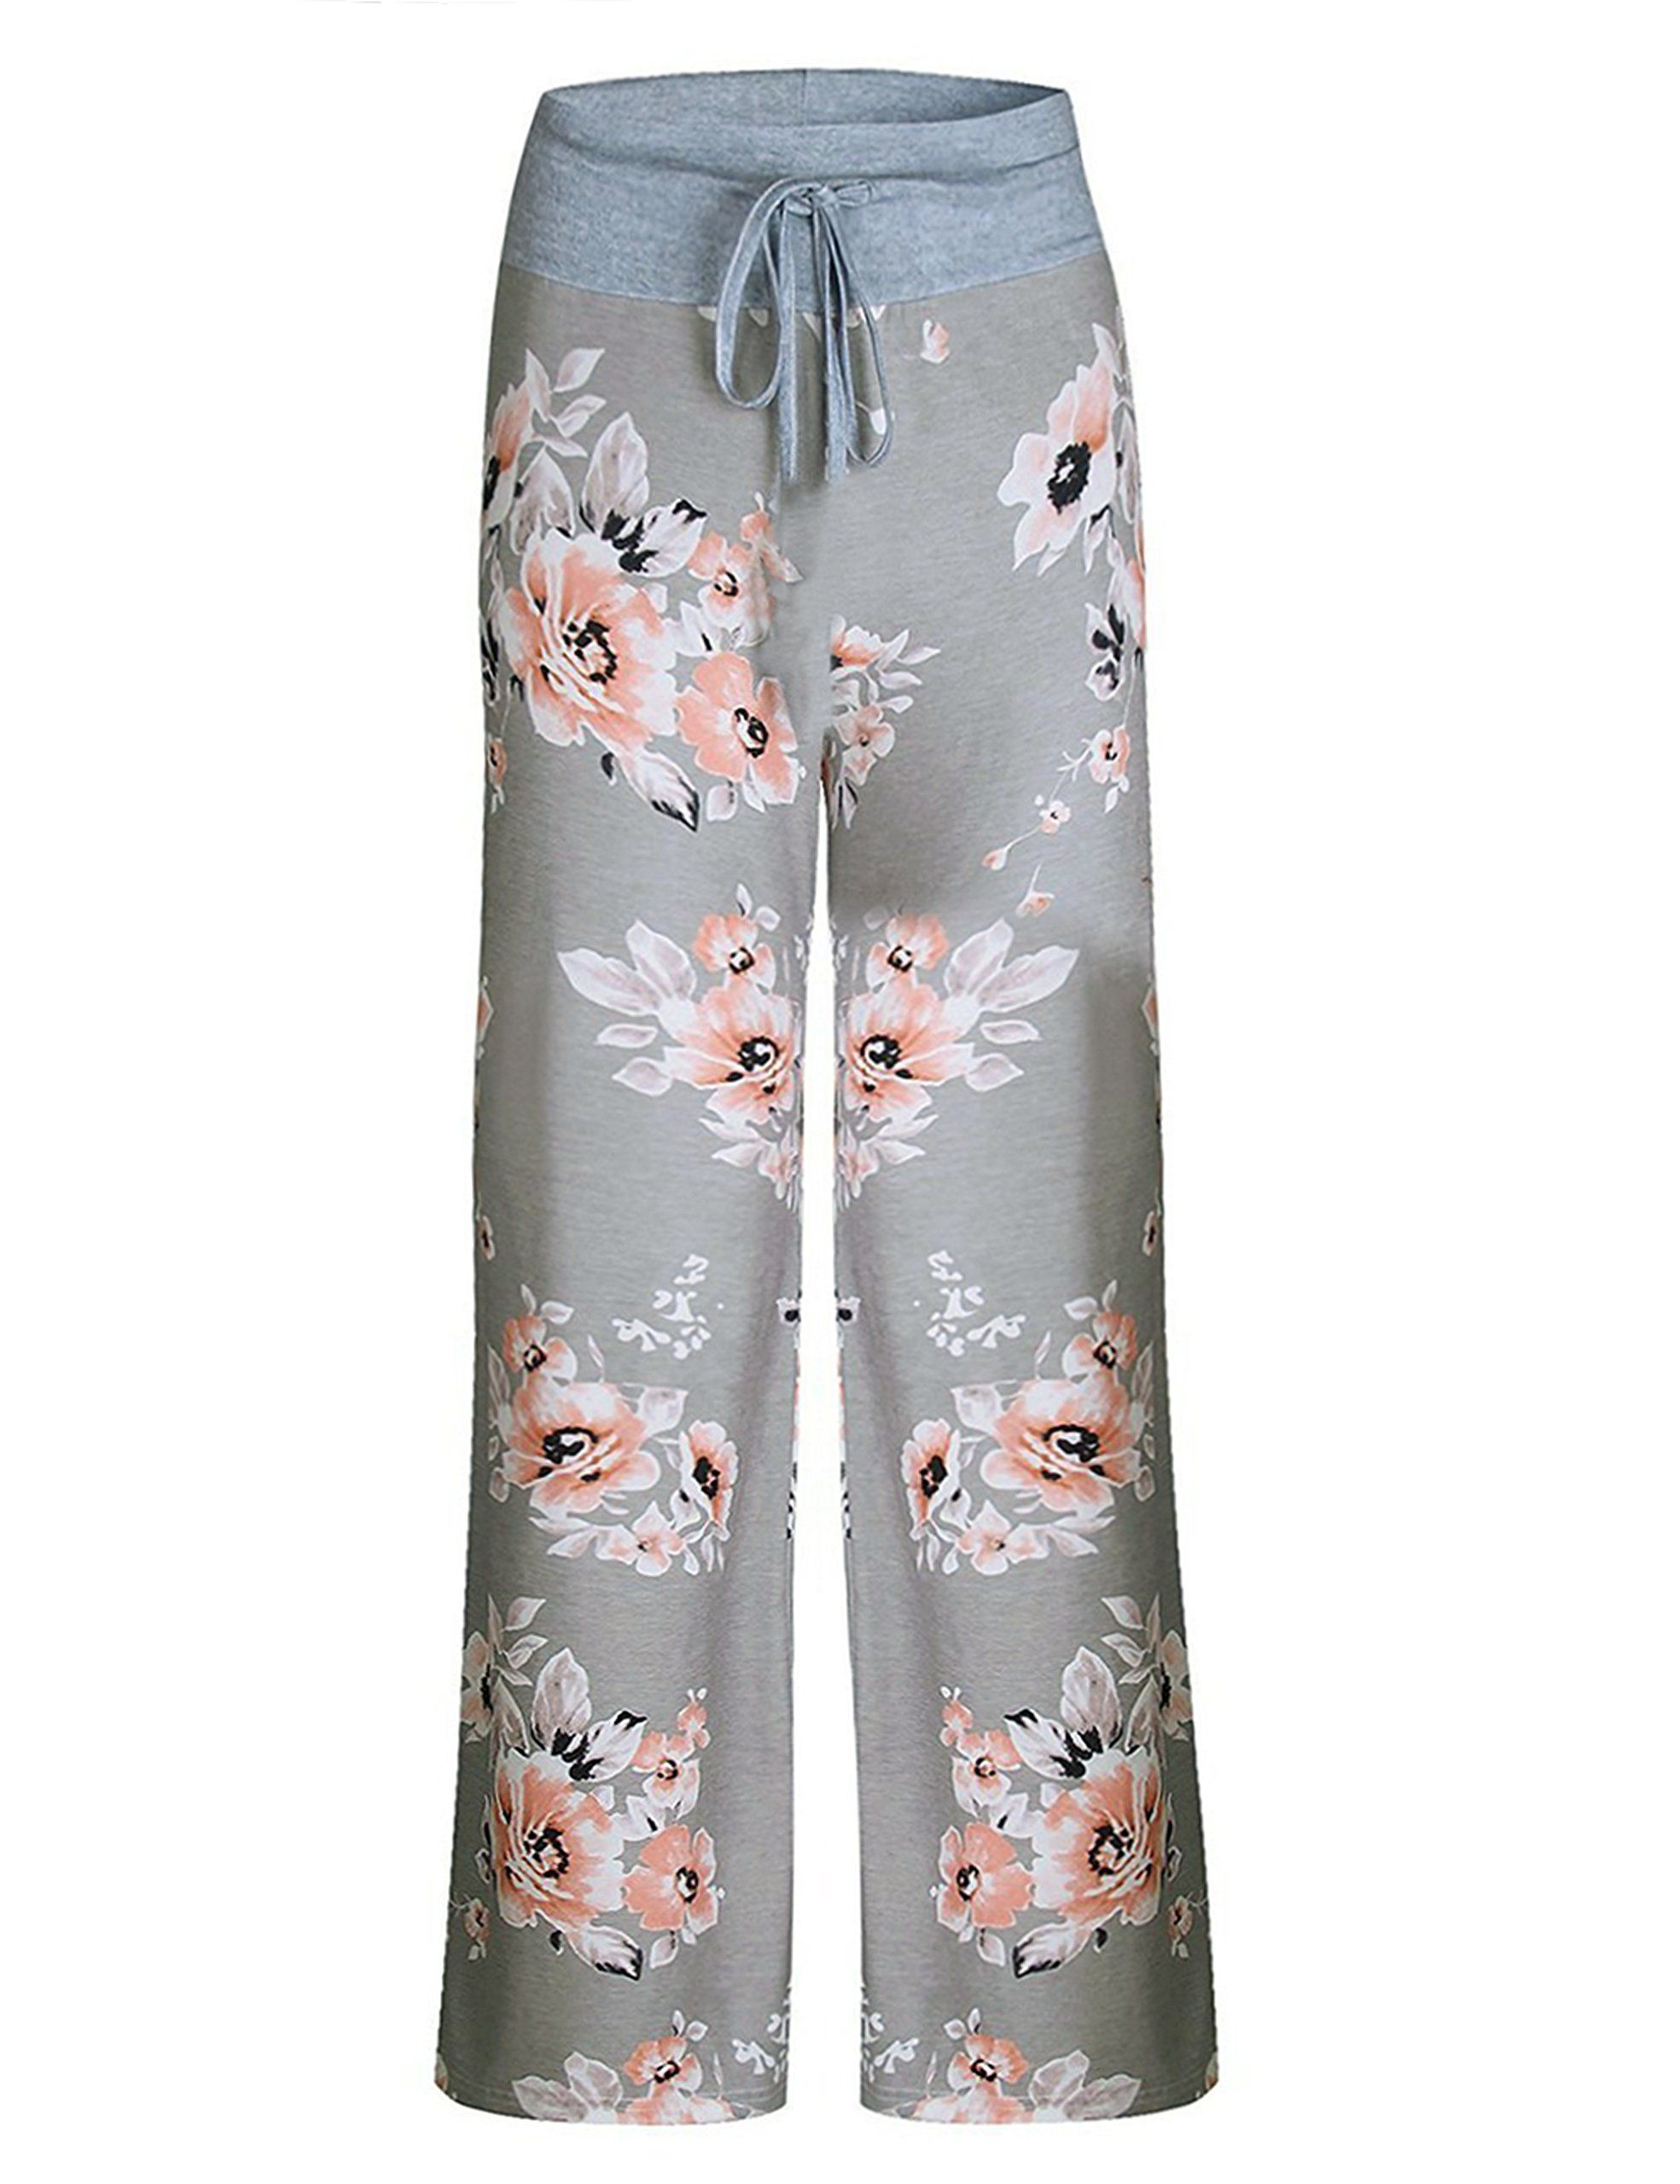 d7b4f31f23d Aifer Womens Pajama Comfy Chic Floral Print Lounge Drawstring Palazzo Long  Wide Leg Pants -- A lot more info might be found at the image link.